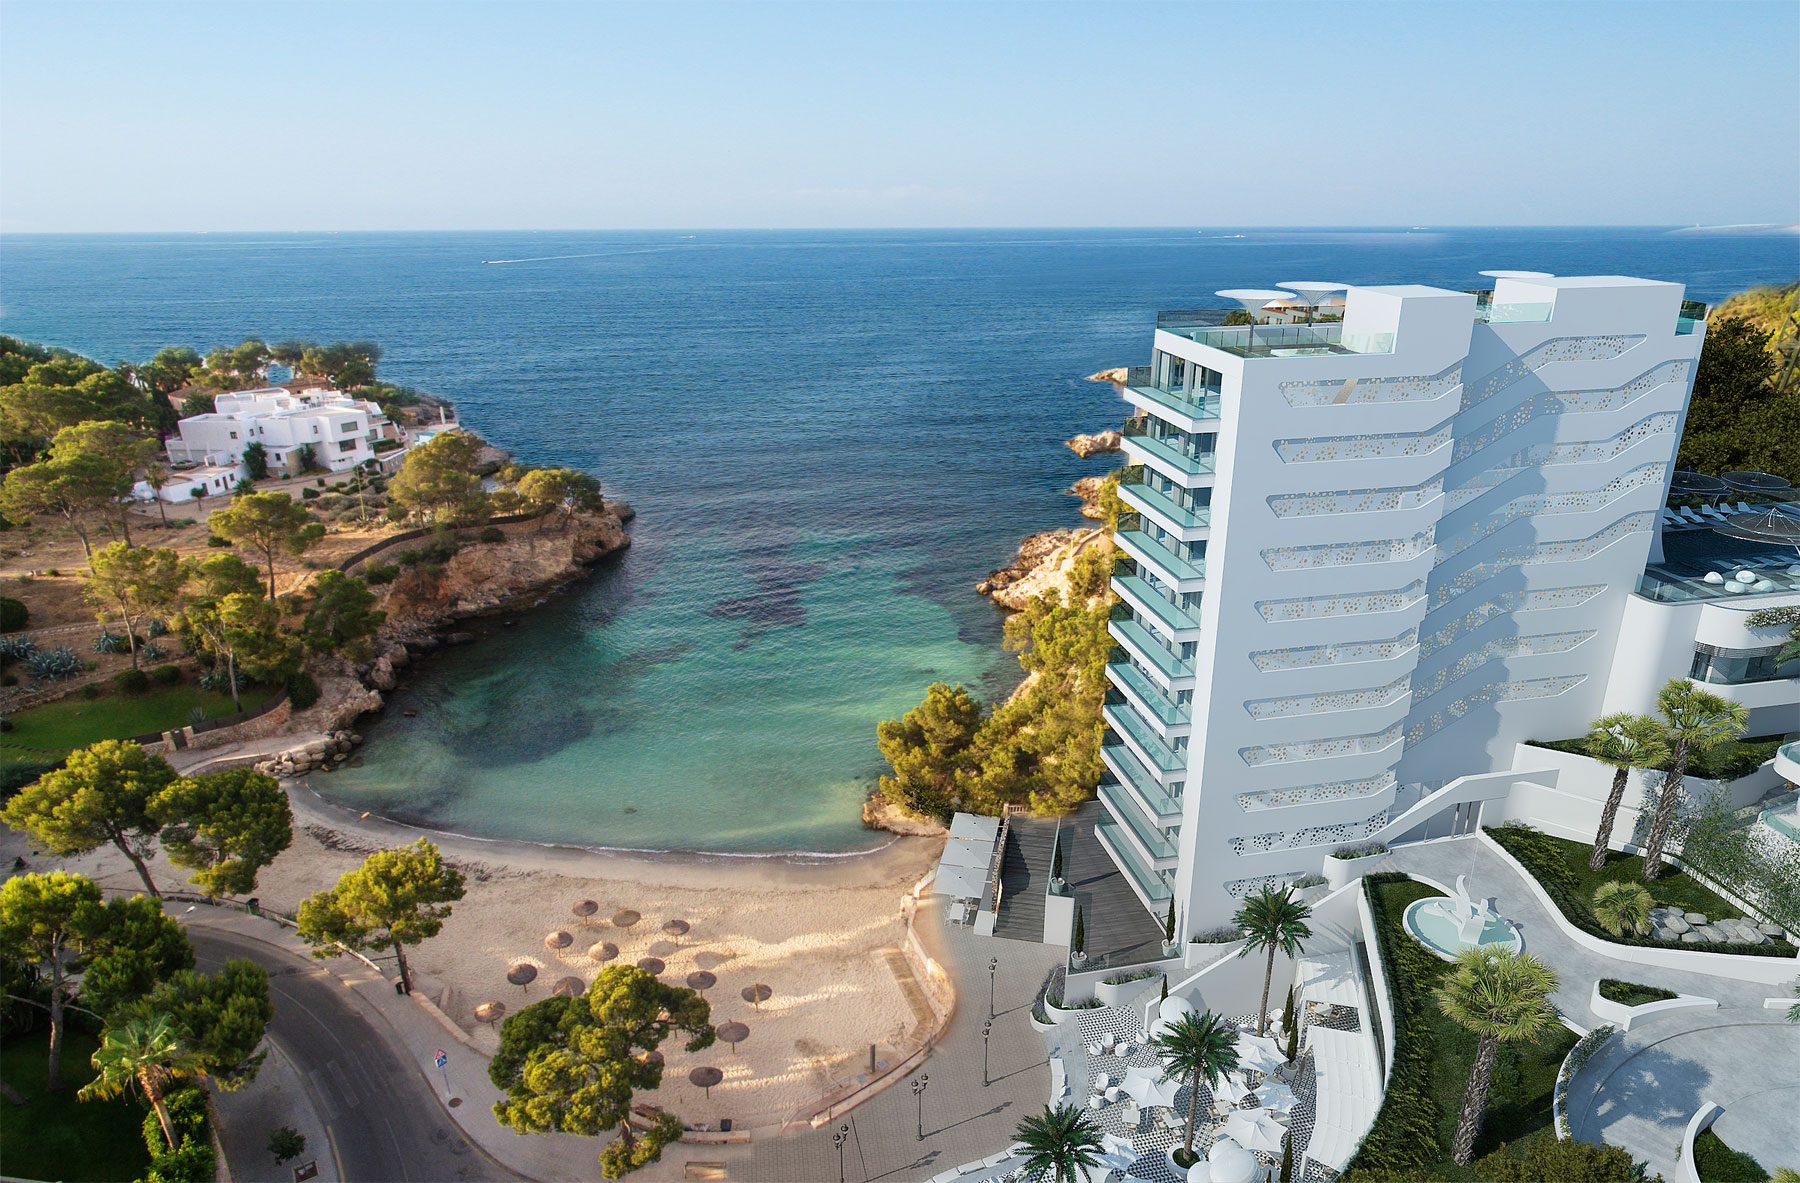 Iberostar Grand Hotel Portals Nous – Majorca's Exciting New Luxury Adults-Only Hotel 4